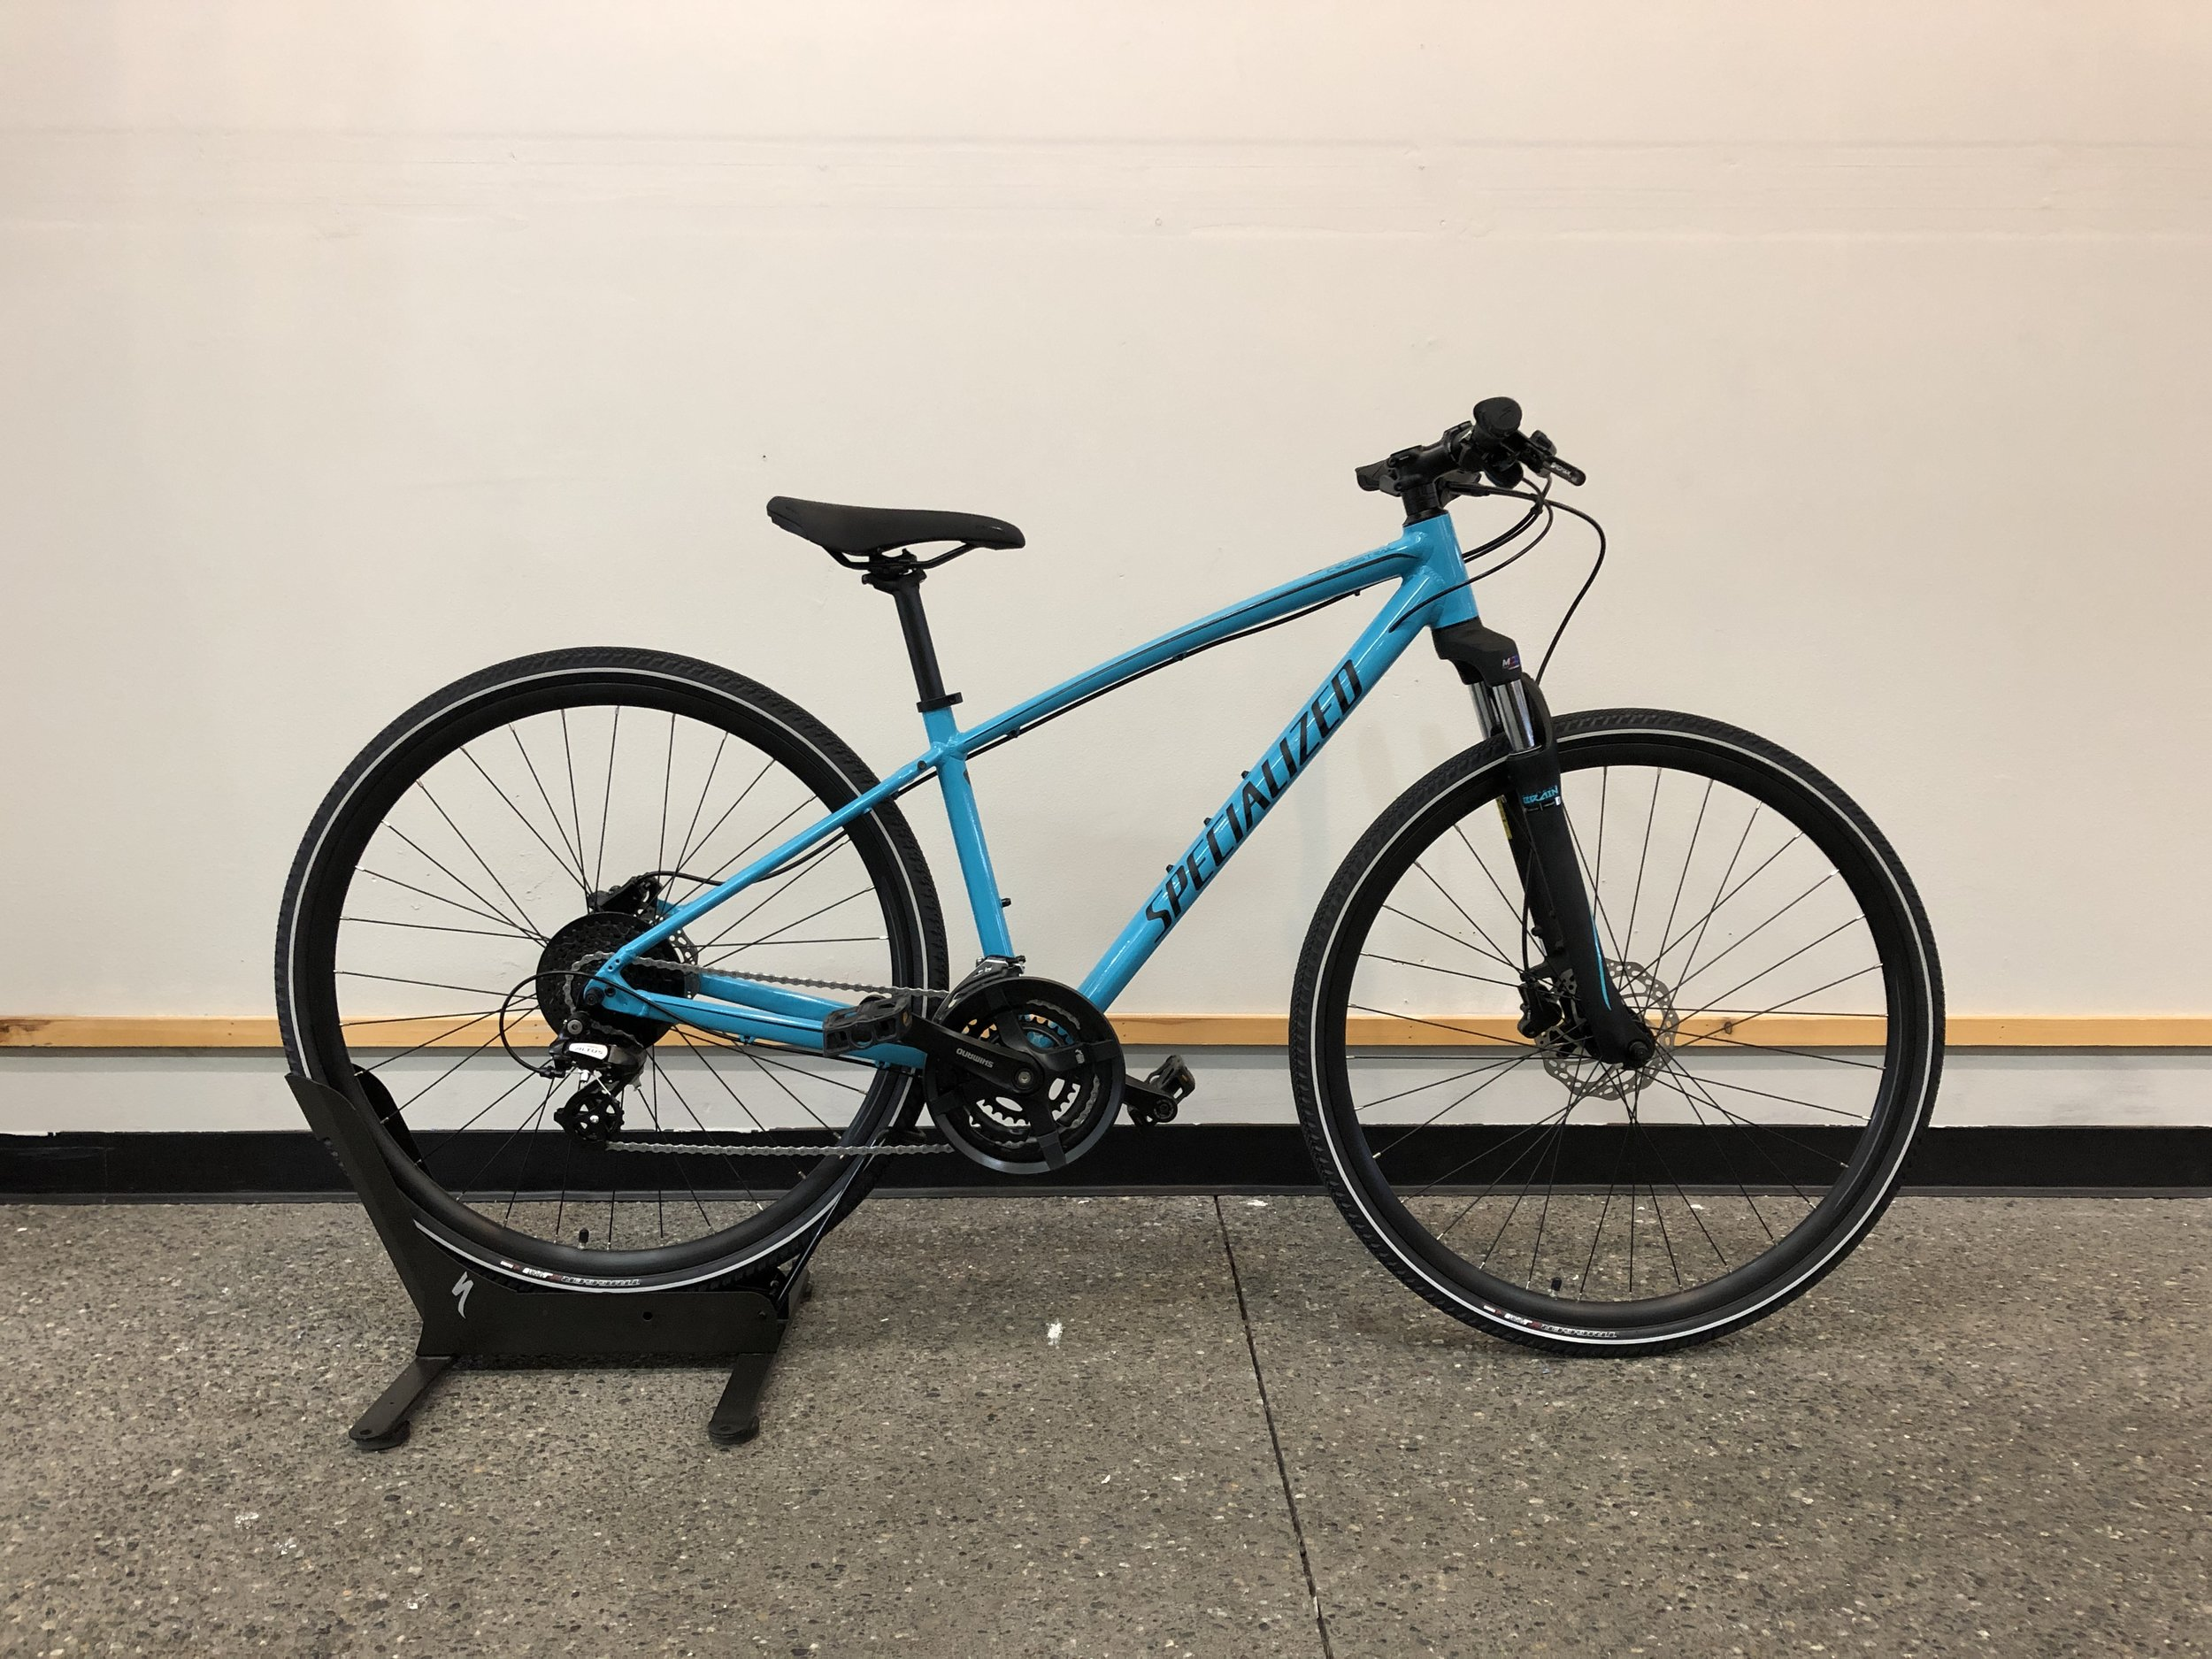 2019 Specialized Crosstrail Hydraulic Disc $670 - Sizes Available : Small